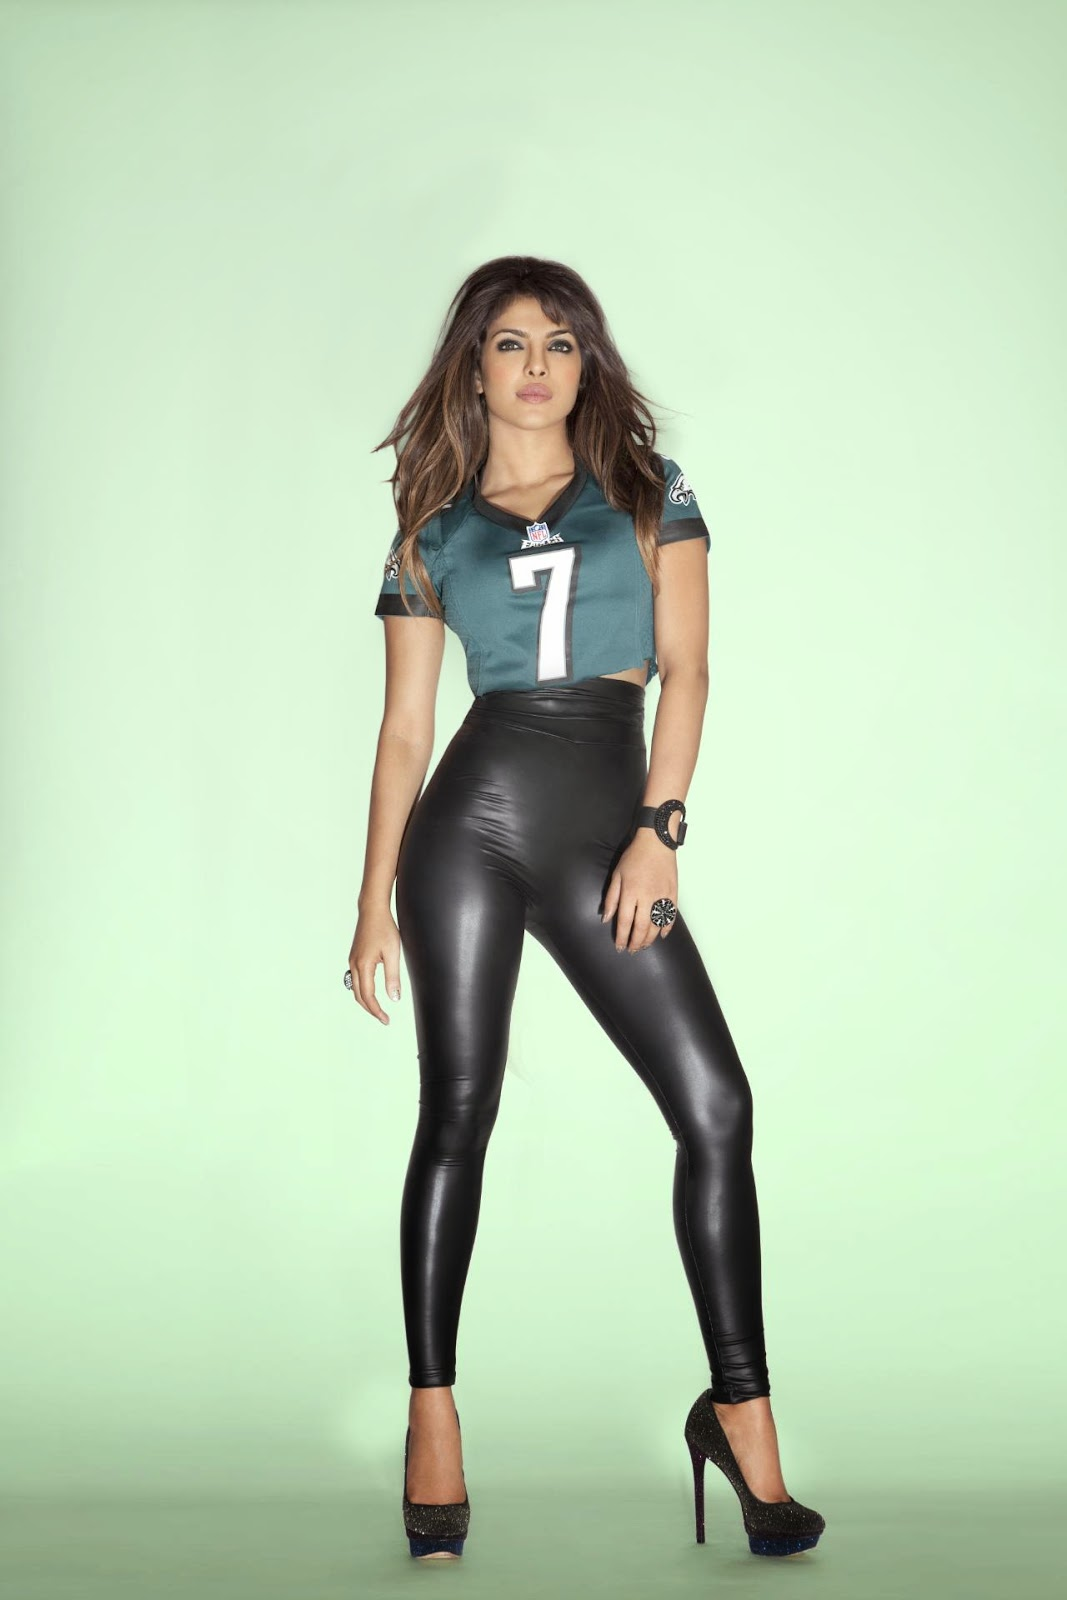 Priyanka Chopra in Kinky NFL Leather Dress